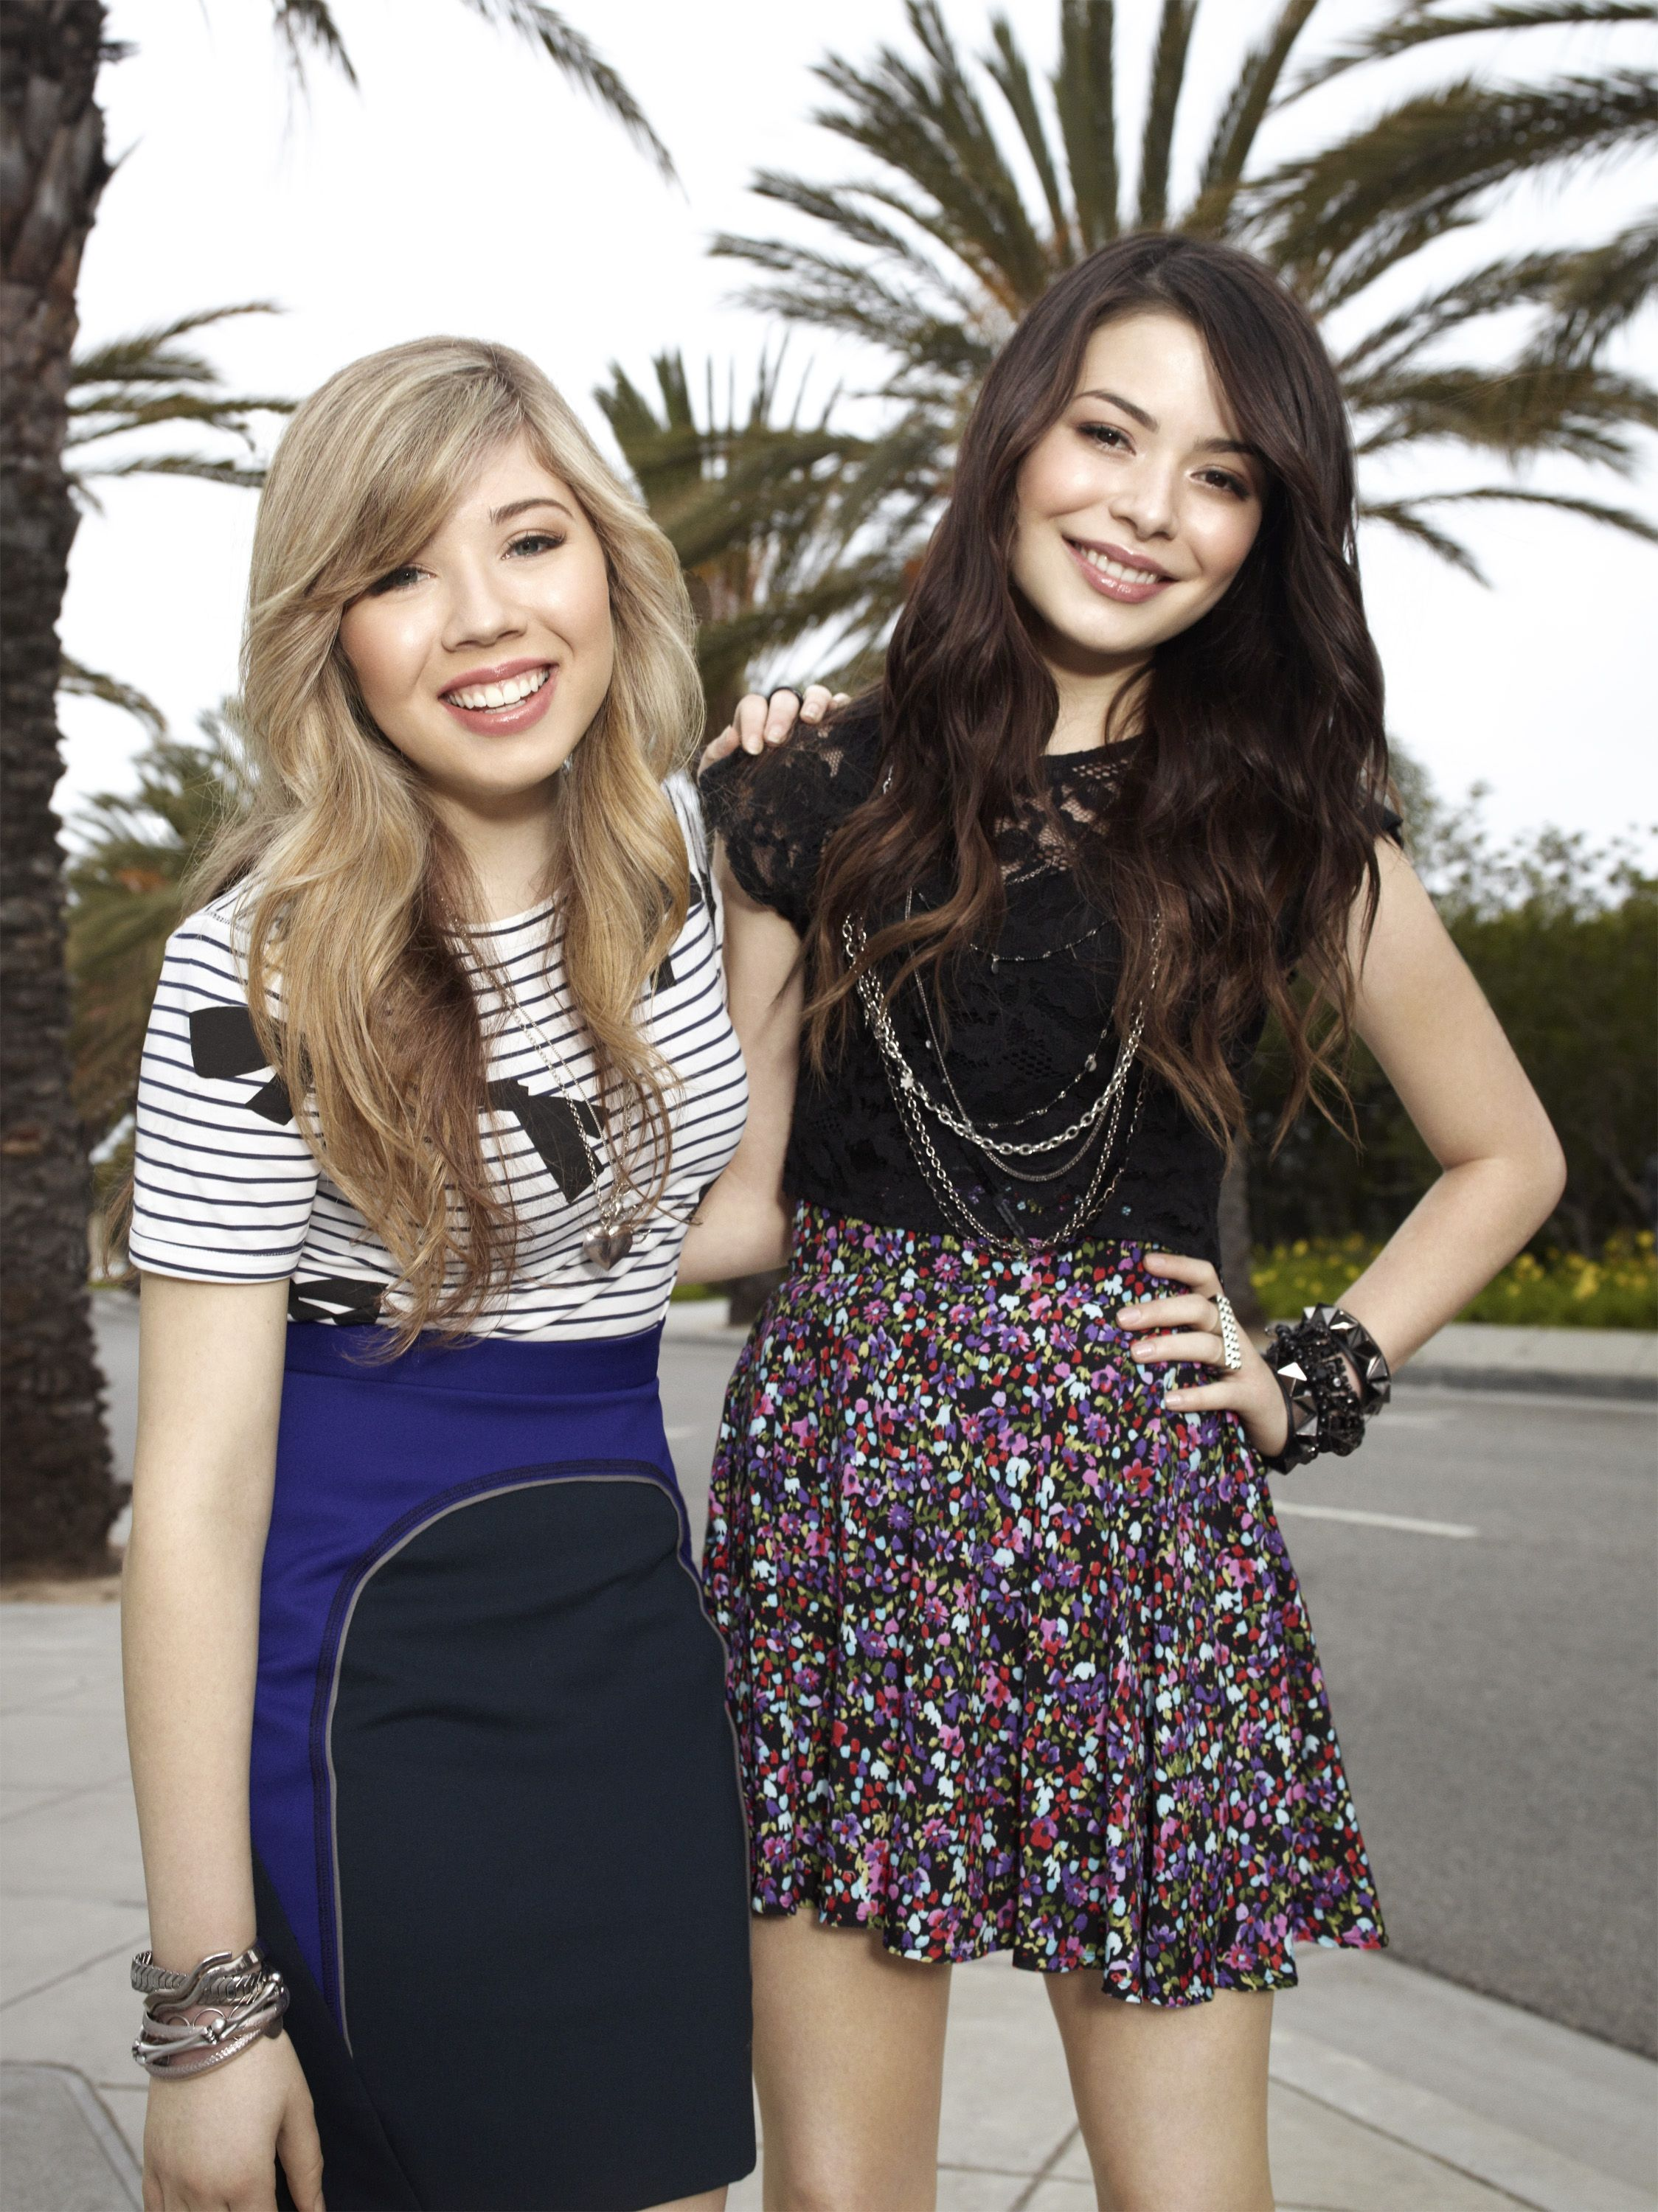 So I met up with my friend Jennette today at lunch.She went to my ...